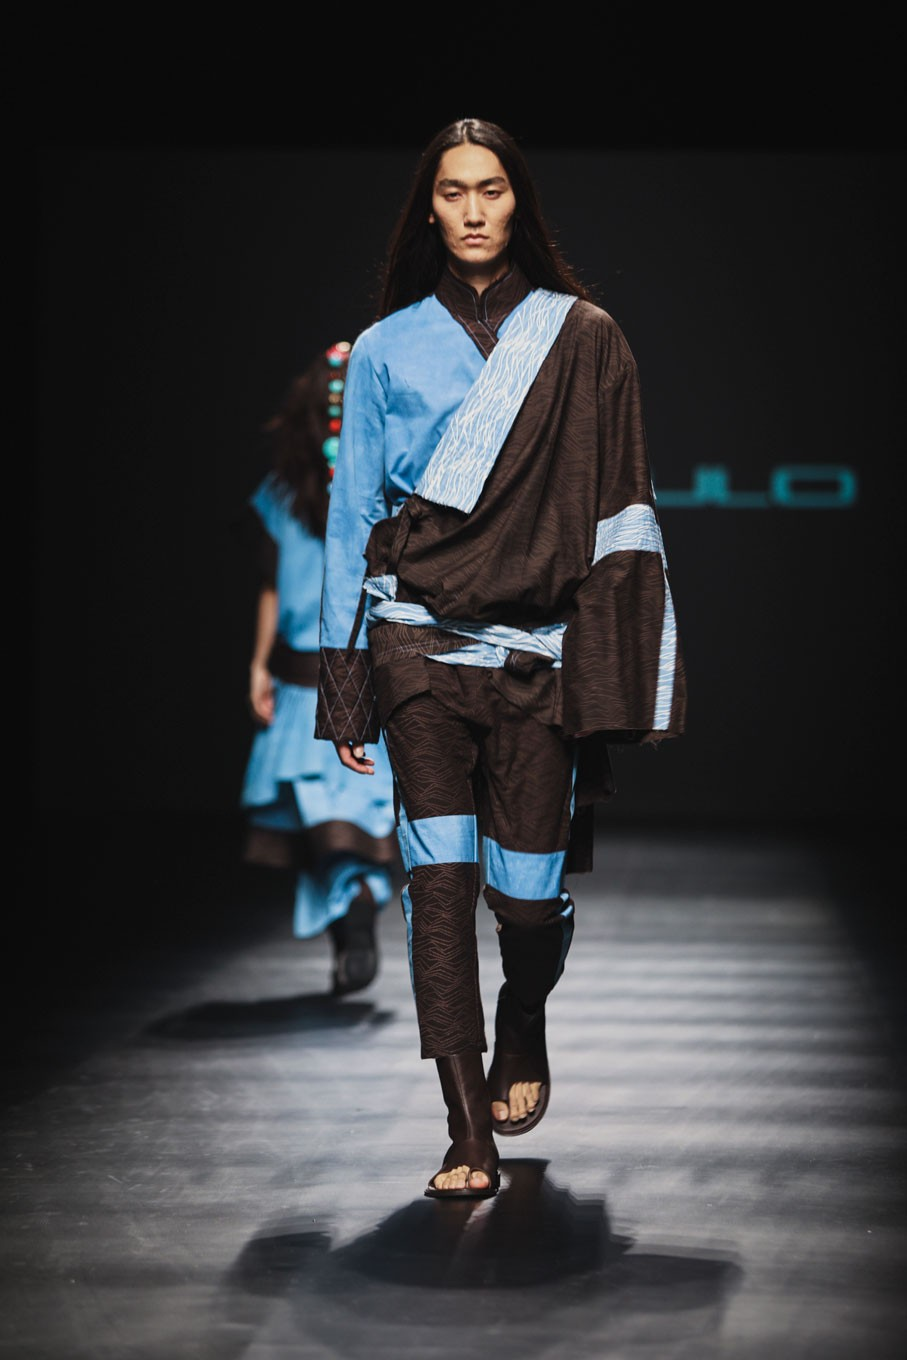 Comprising both men's and women's wear, each item was inspired by the land and scenery, as well as the culture and people of Mustang.